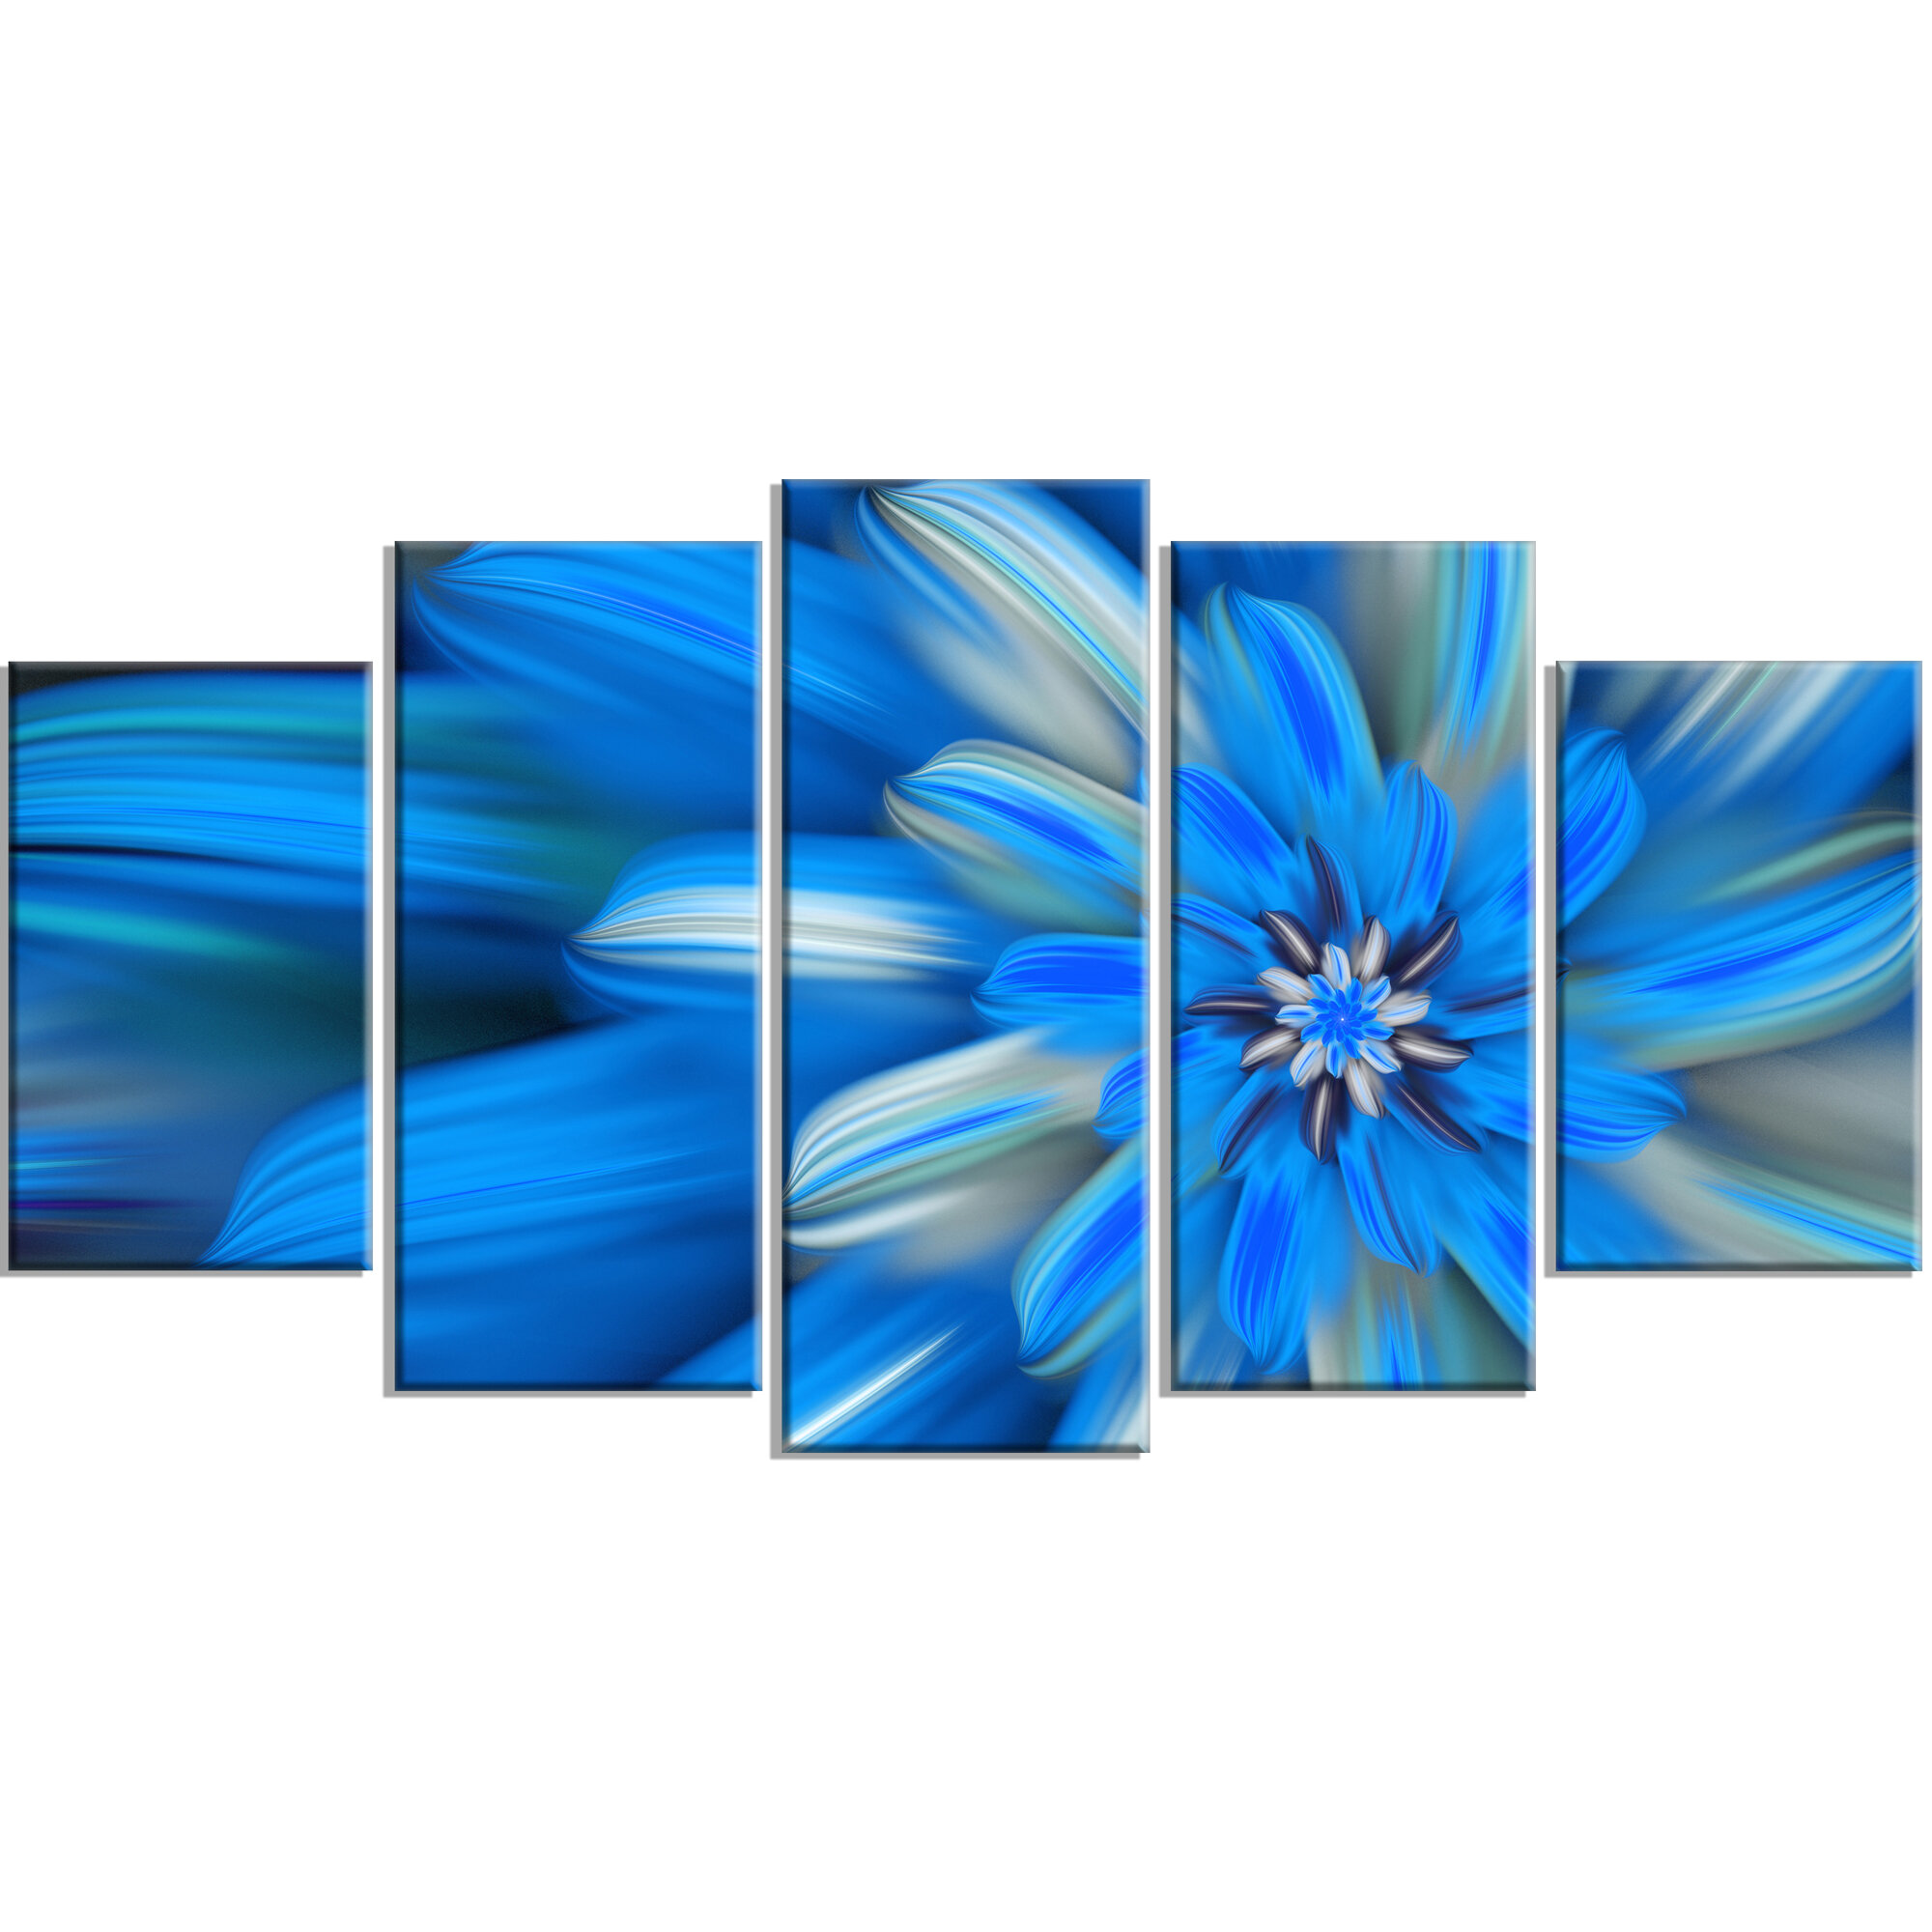 Designart exotic dance of blue flower petals graphic art print designart exotic dance of blue flower petals graphic art print multi piece image on canvas wayfair izmirmasajfo